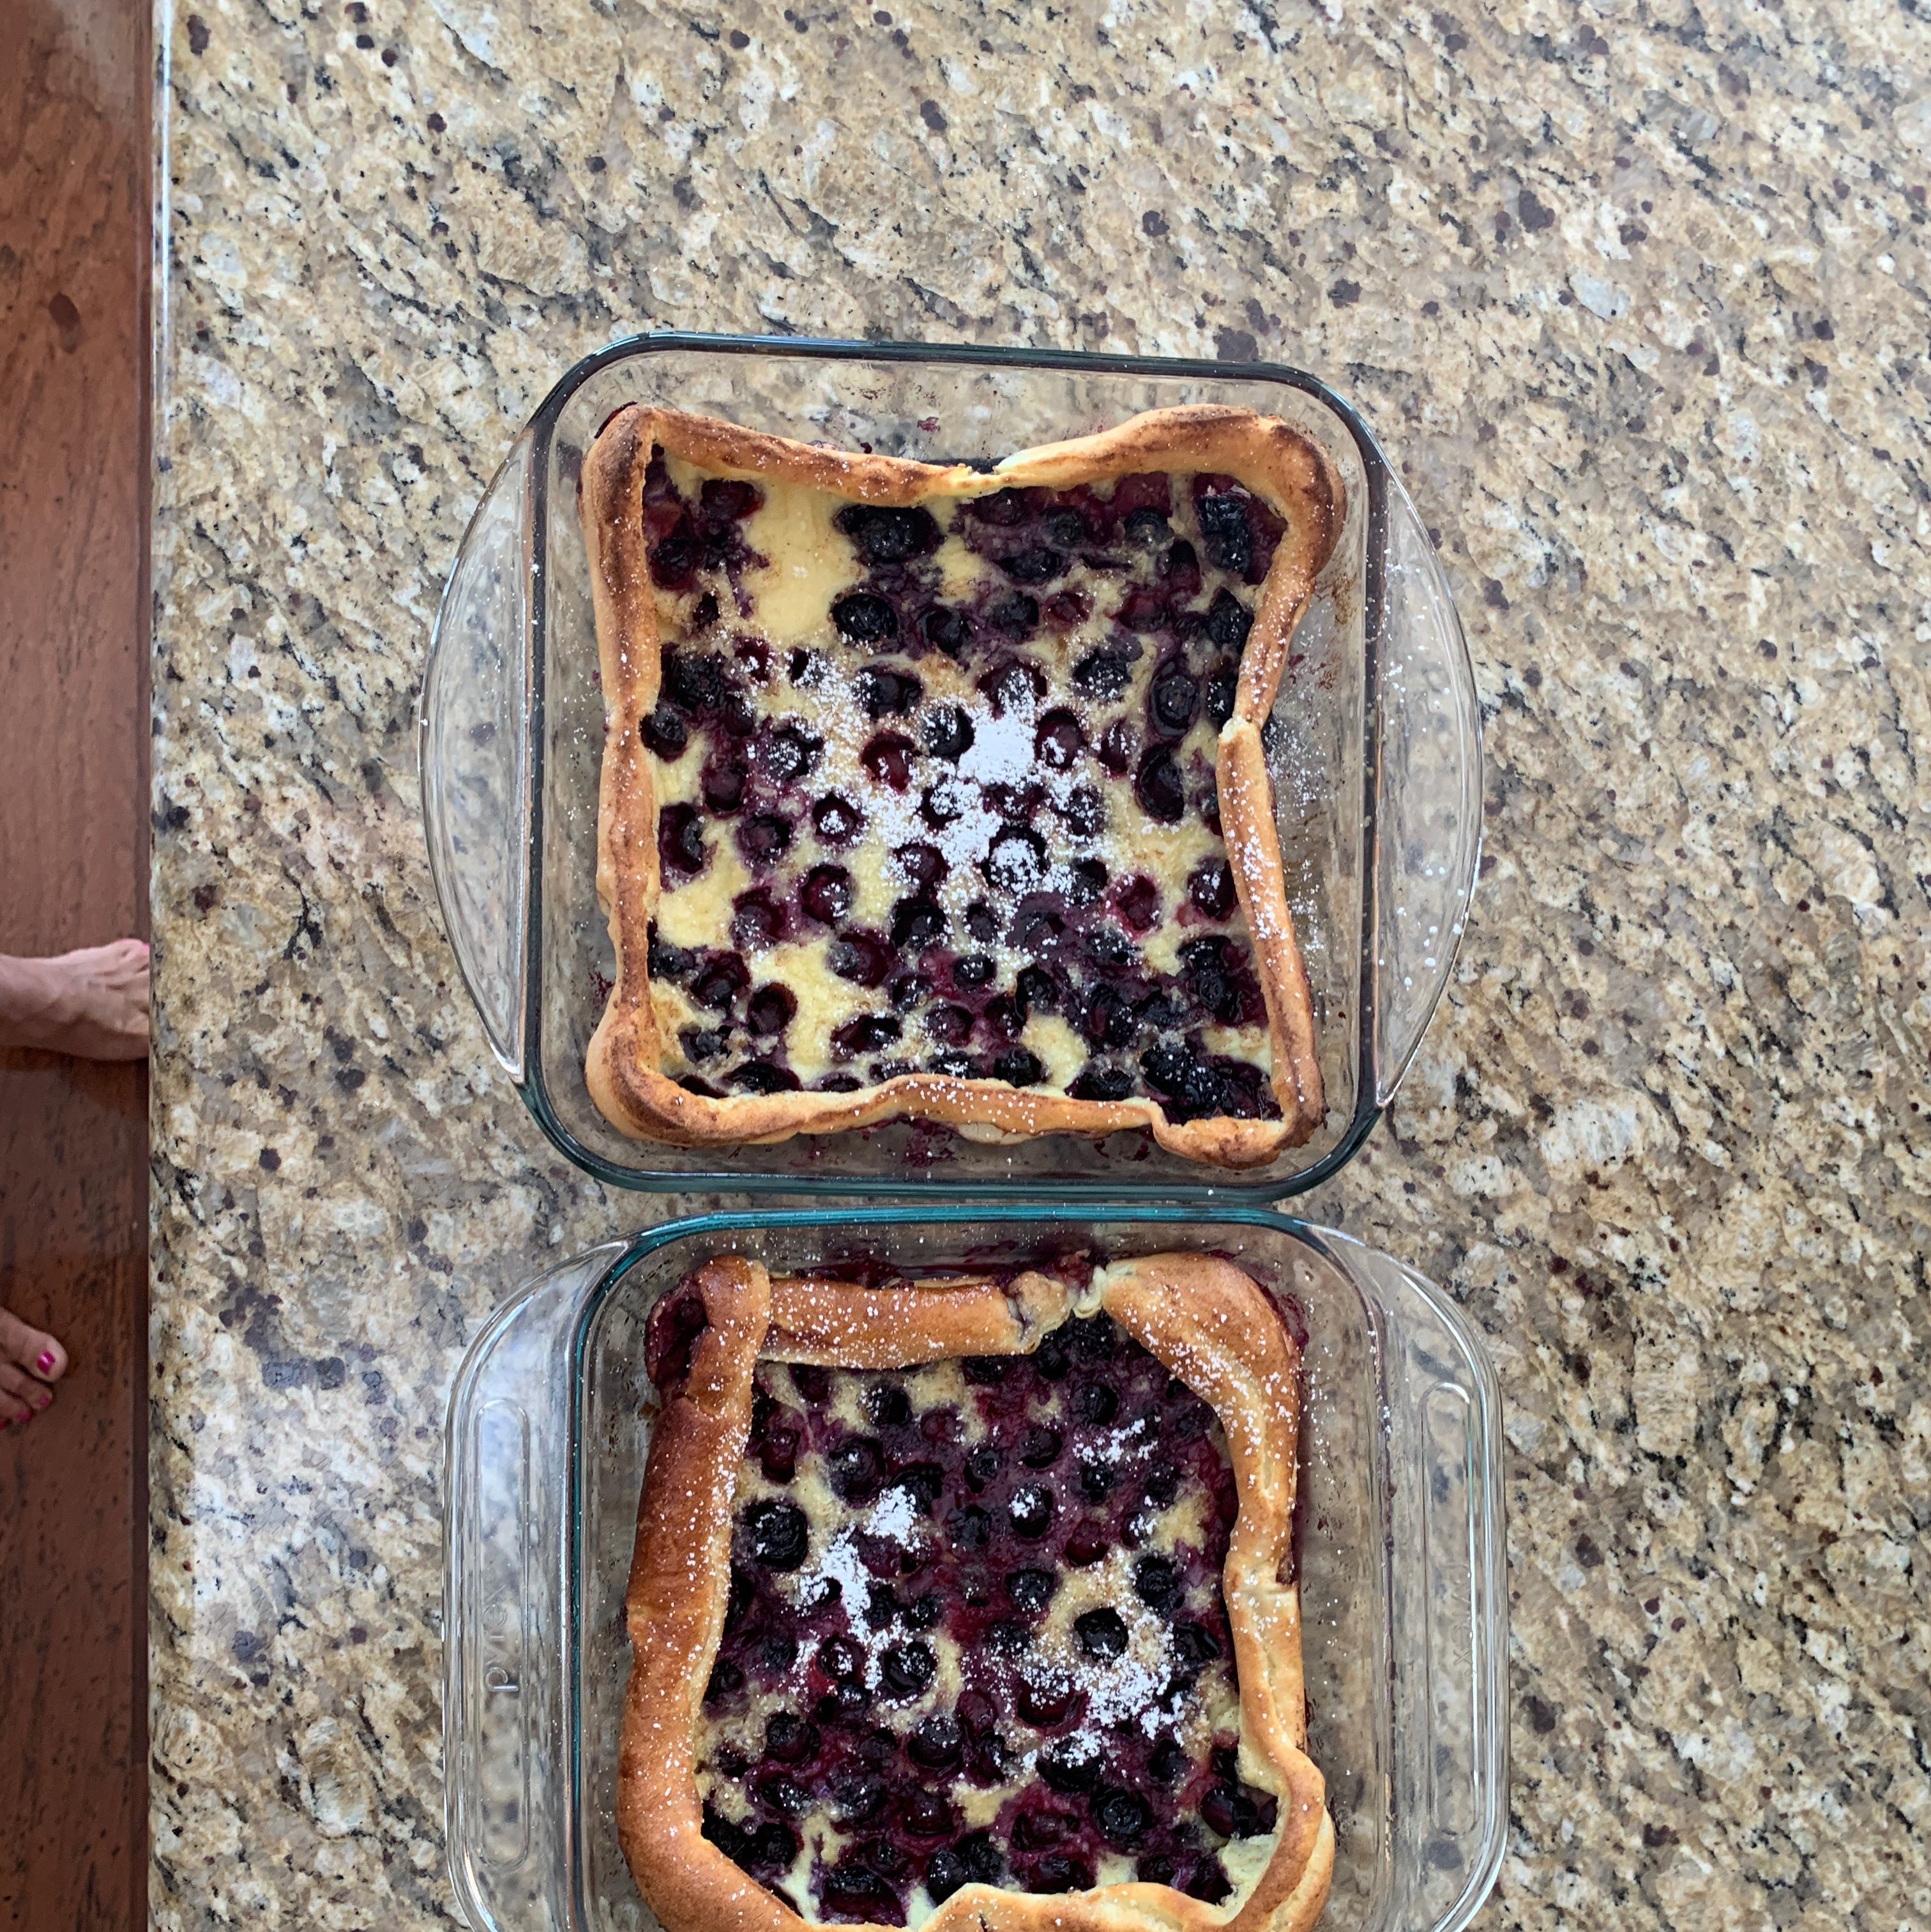 Puffed Blueberry Pancakes